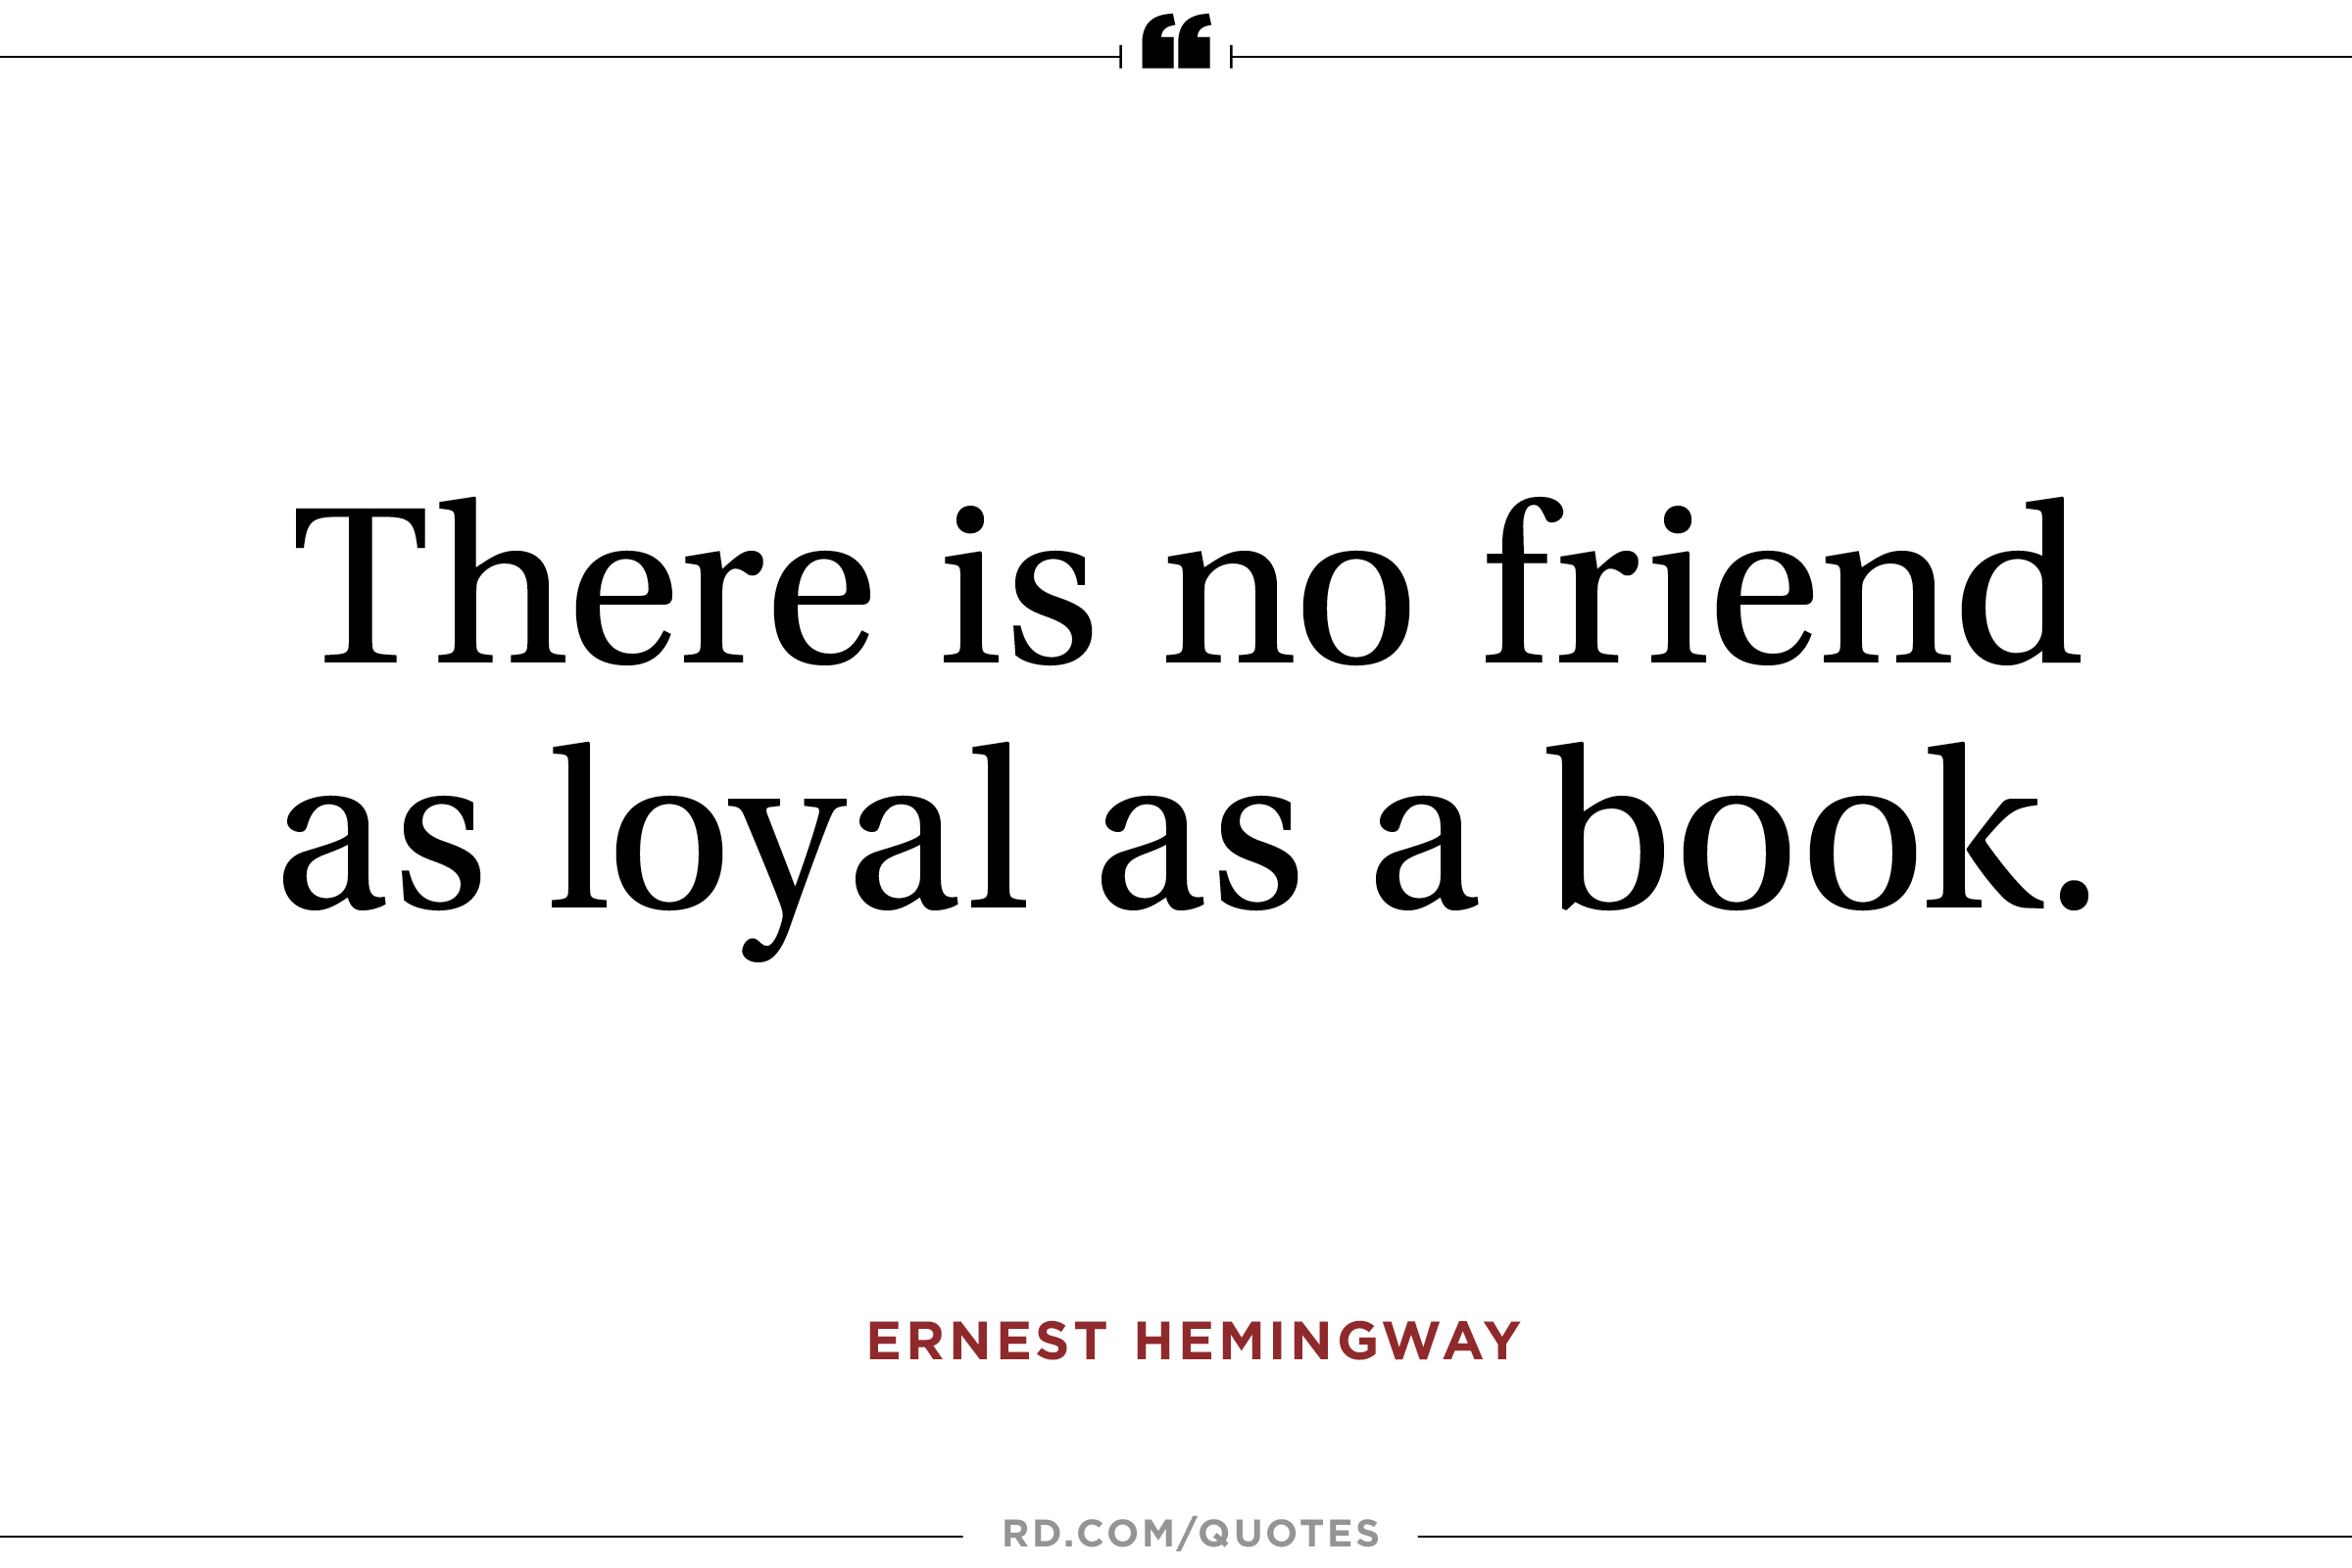 Marvelous Ernest Hemingway Quotes